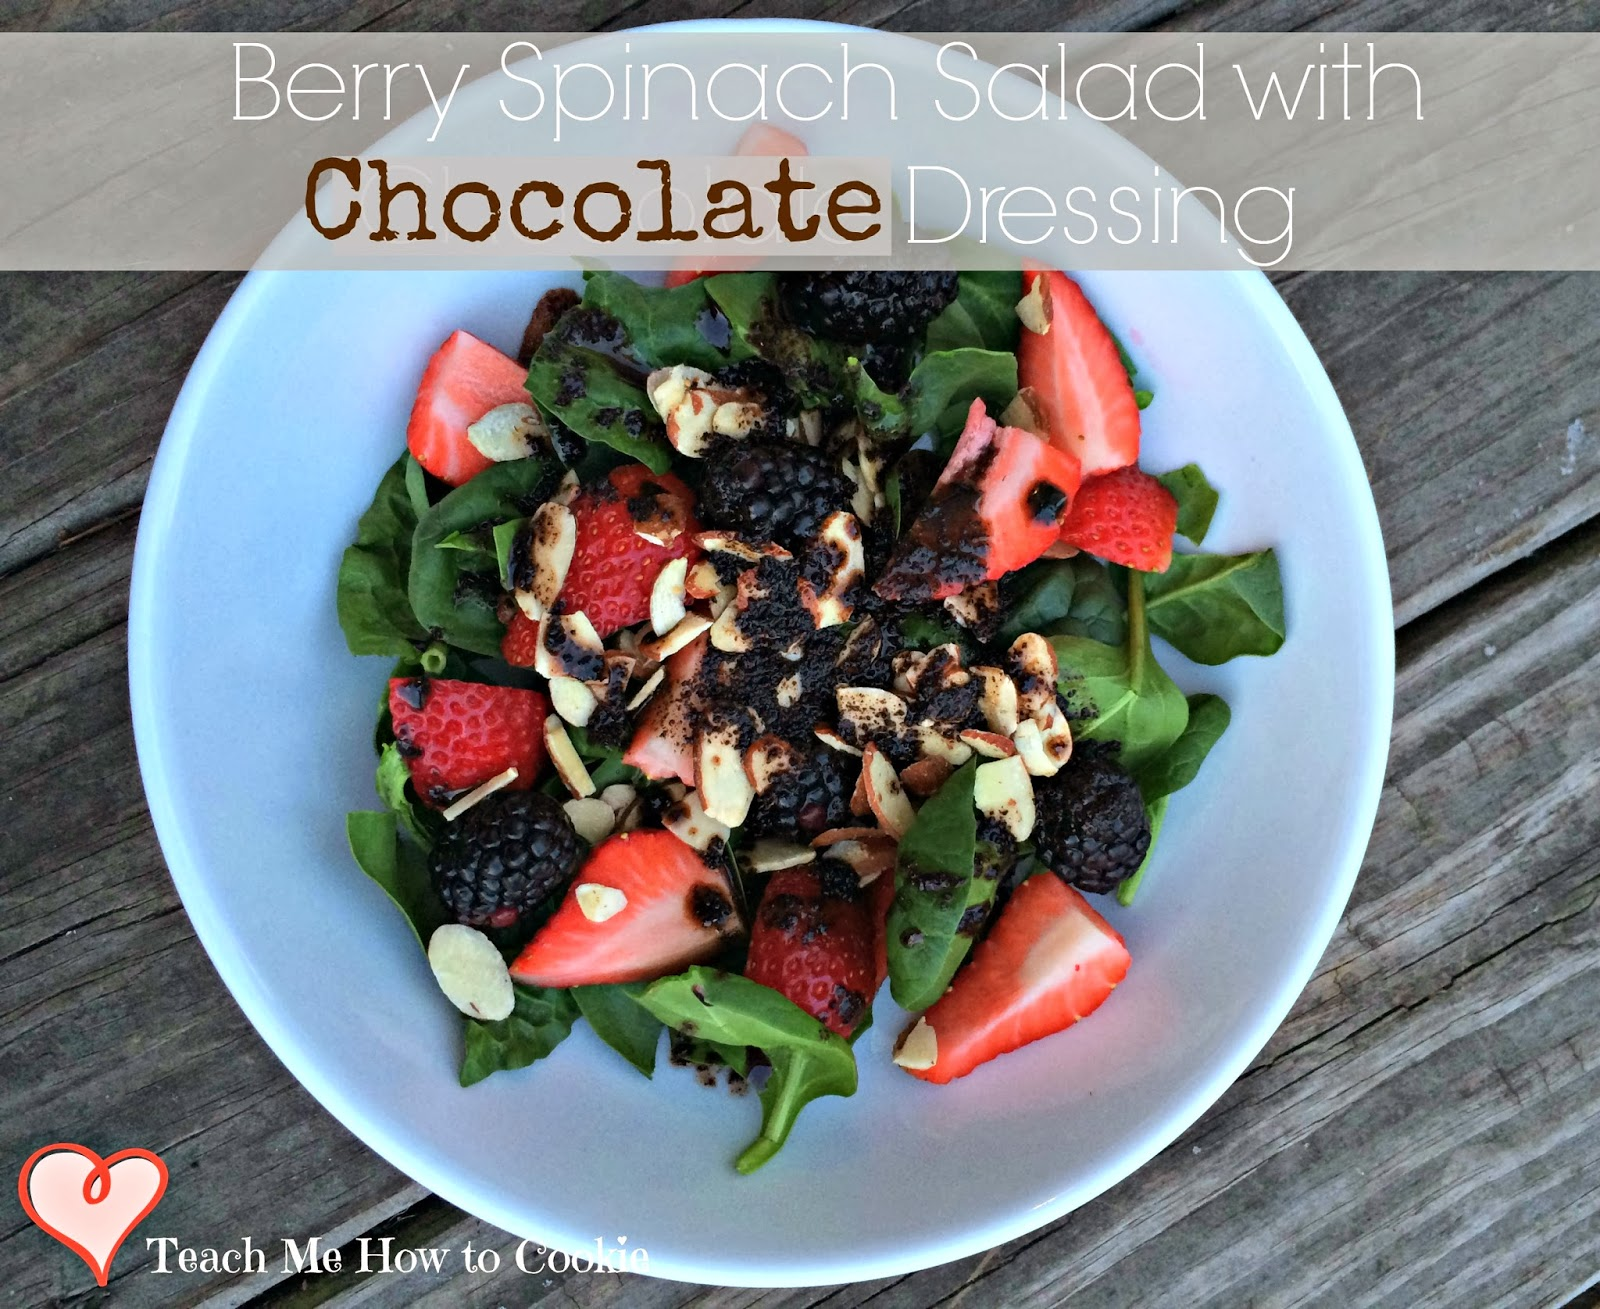 Berry Spinach Salad with Chocolate Dressing